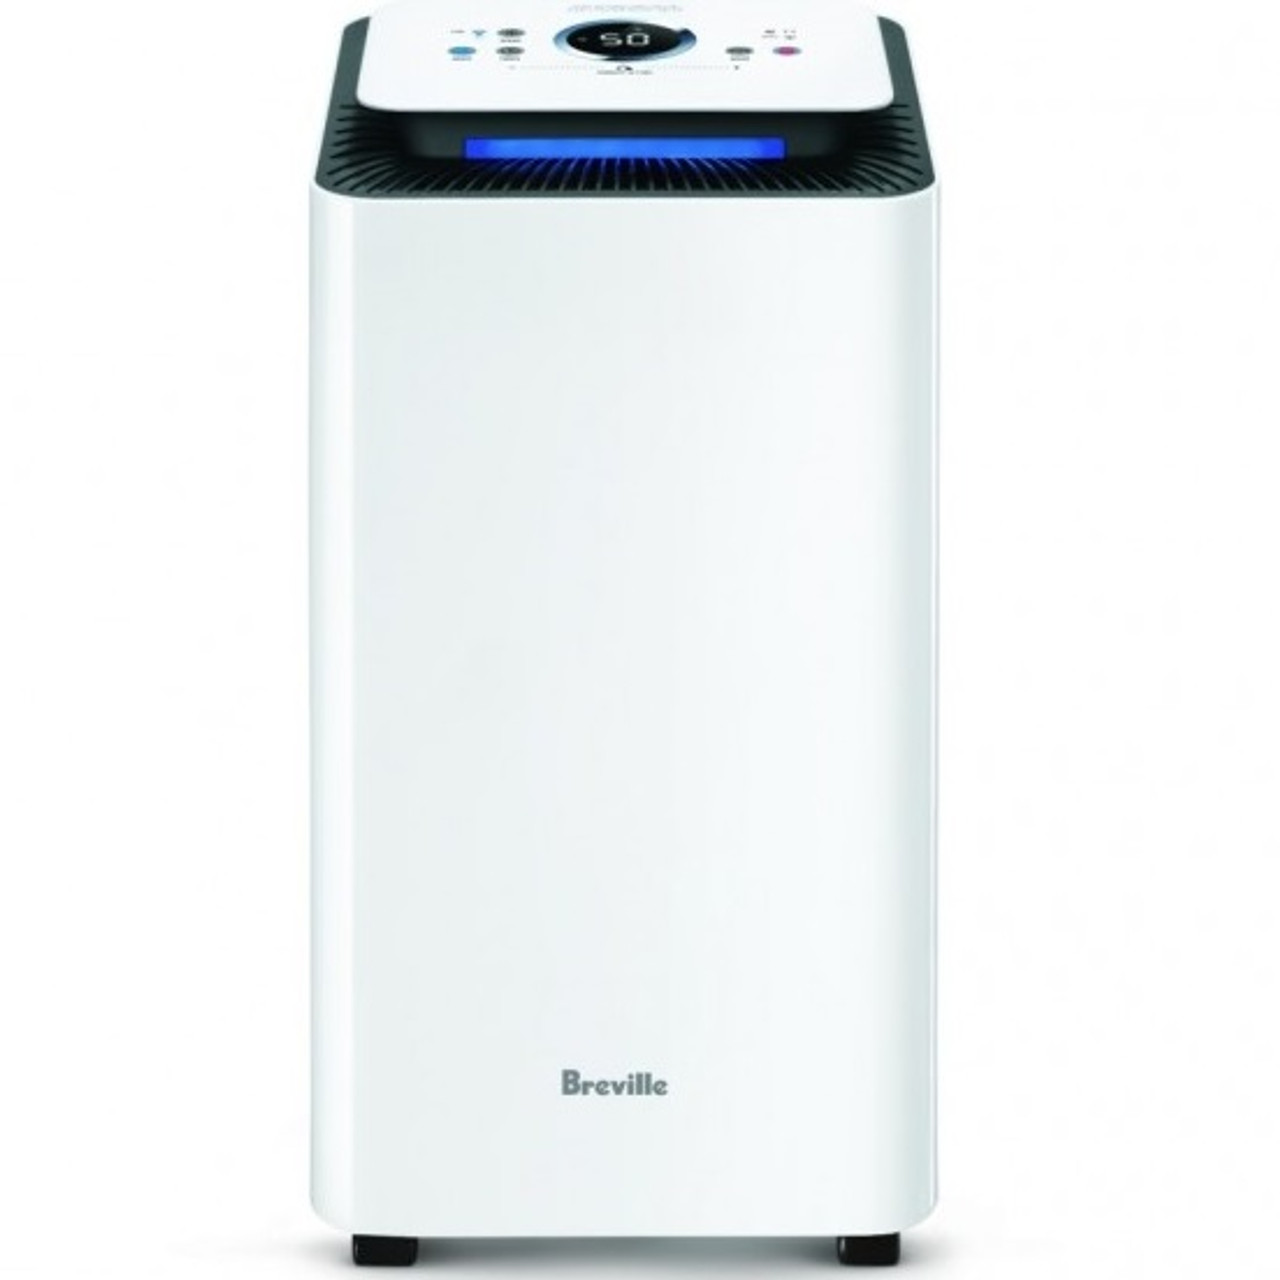 Breville LAD200 the Smart Dry Dehumidifier - White